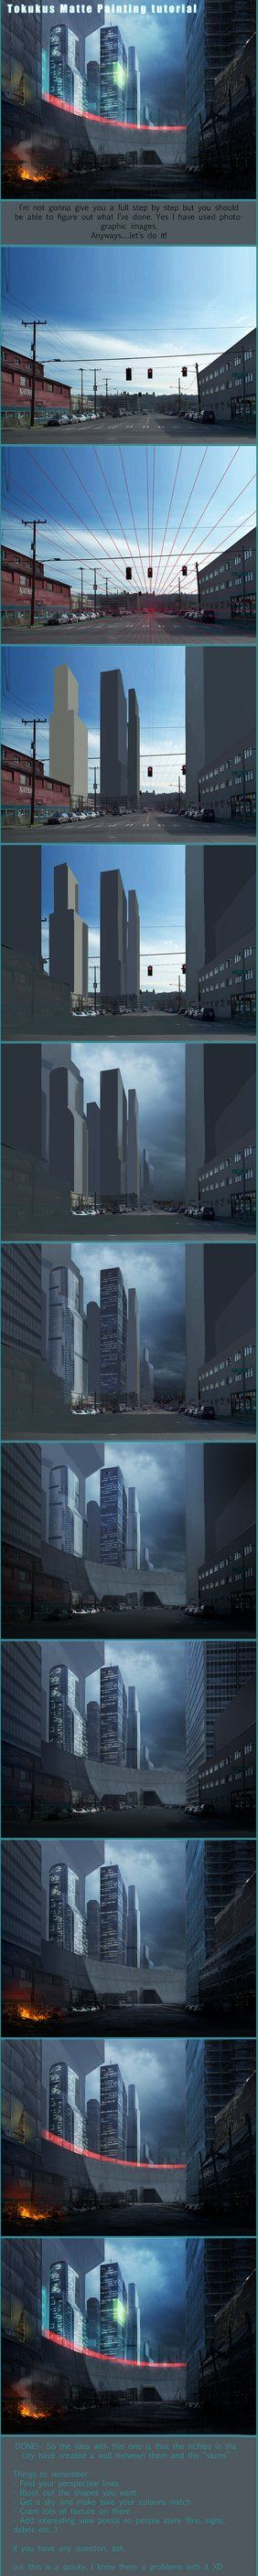 Matte Painting Tutorial